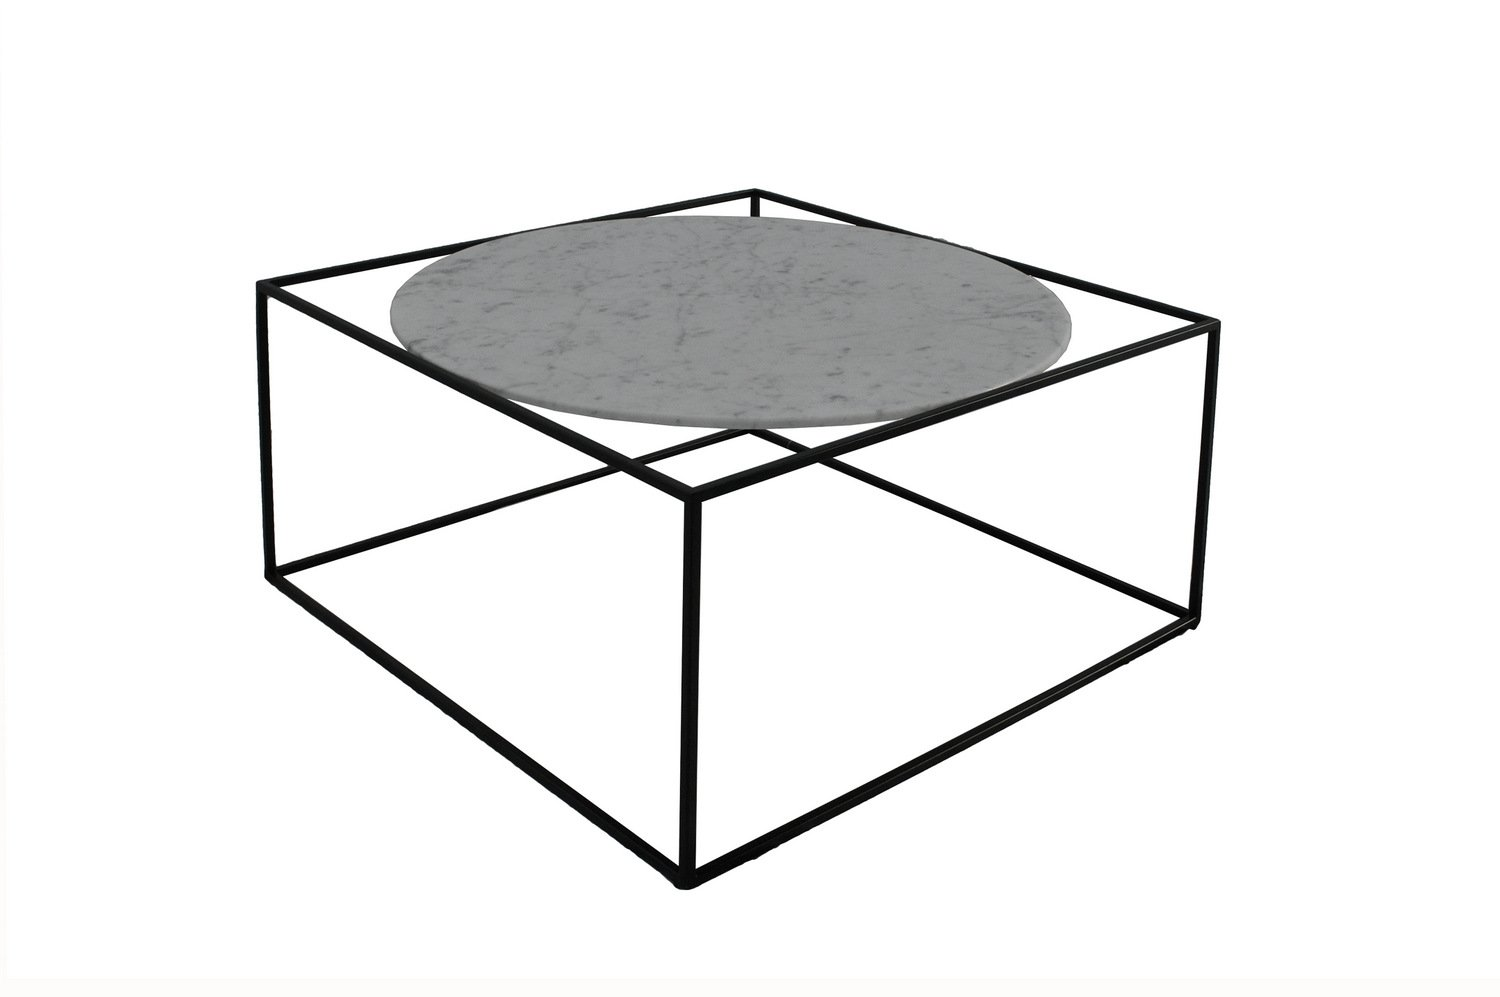 G3 marble coffee table by roche bobois design johan lindst n - Table ovale marbre roche bobois ...